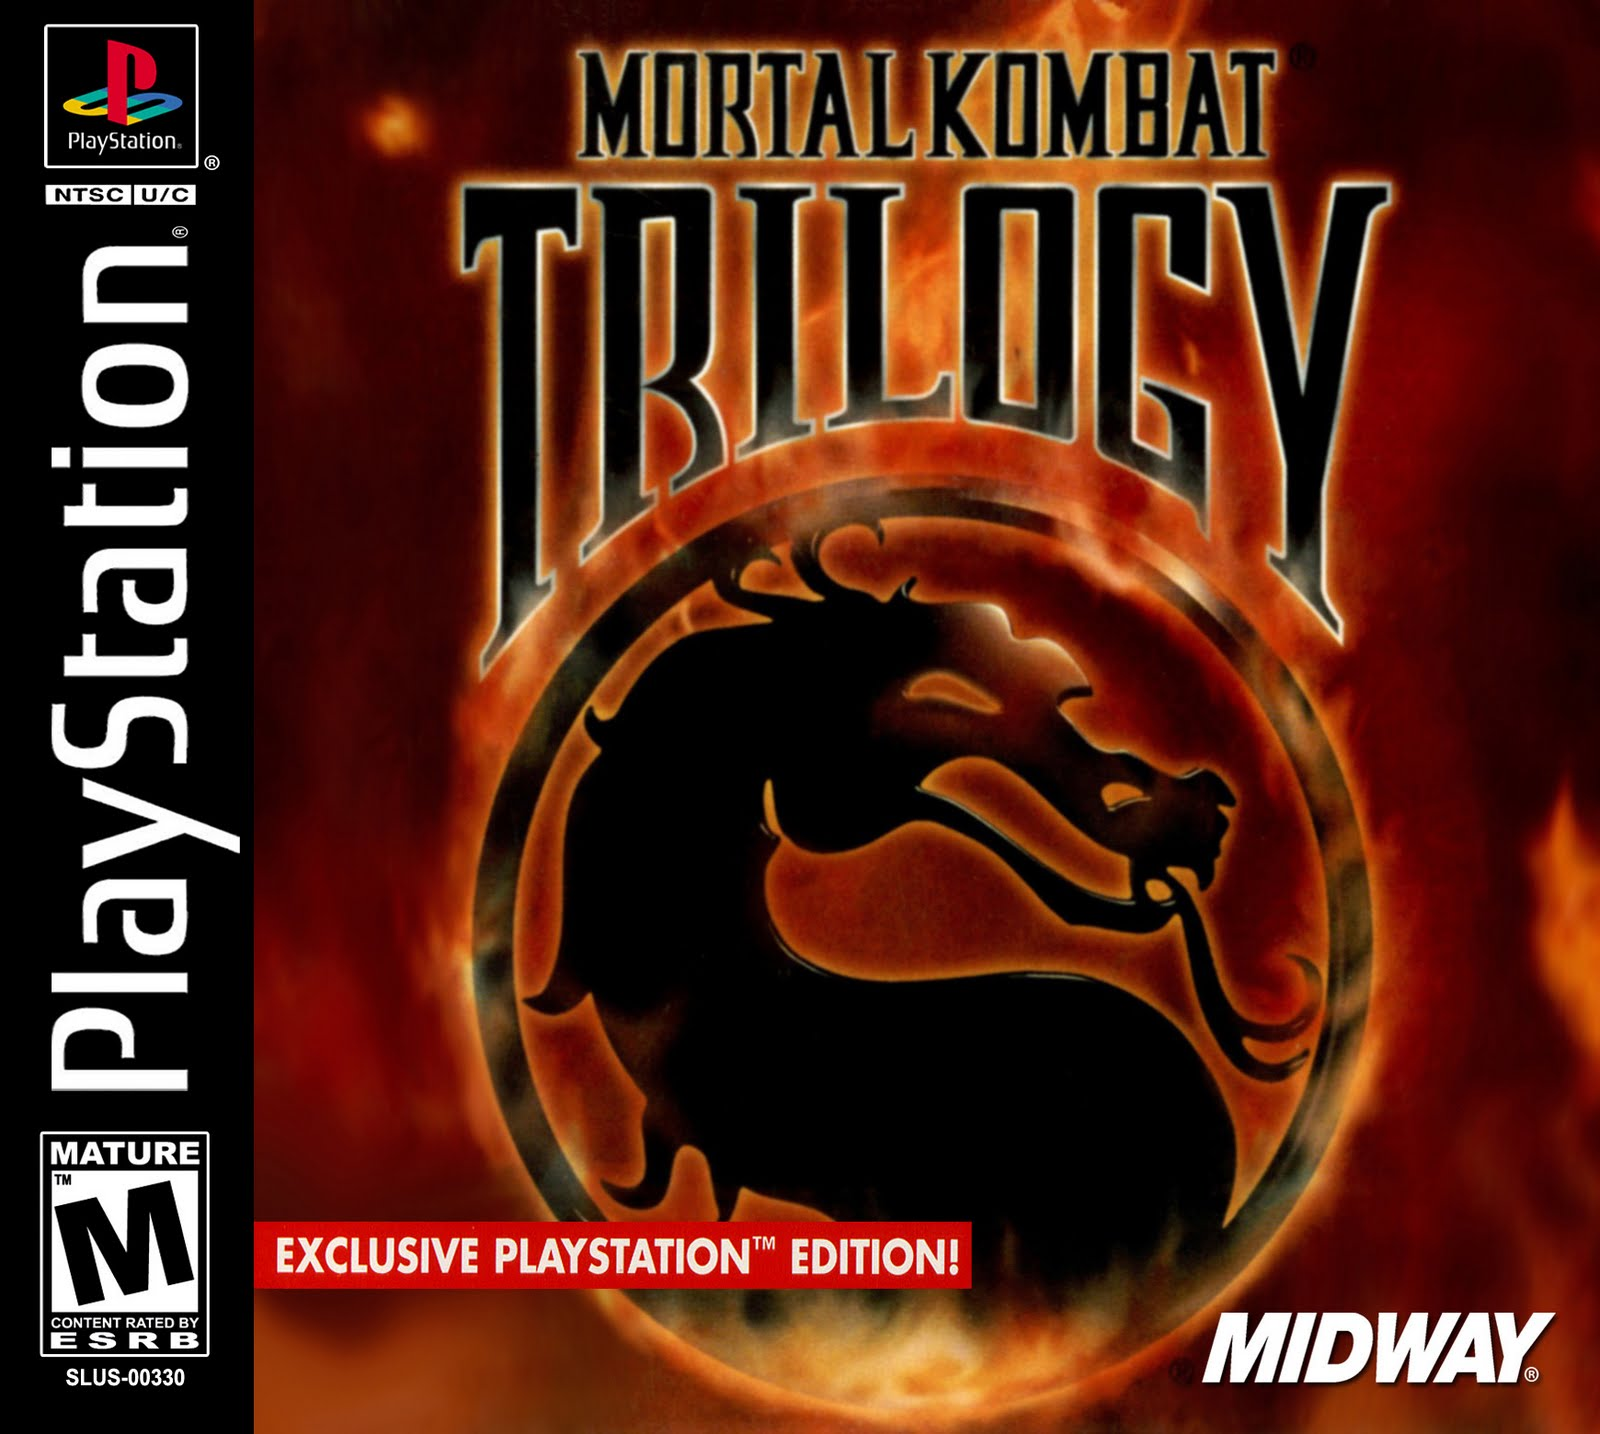 All mortal kombat trilogy fatalities and unlockable characters.